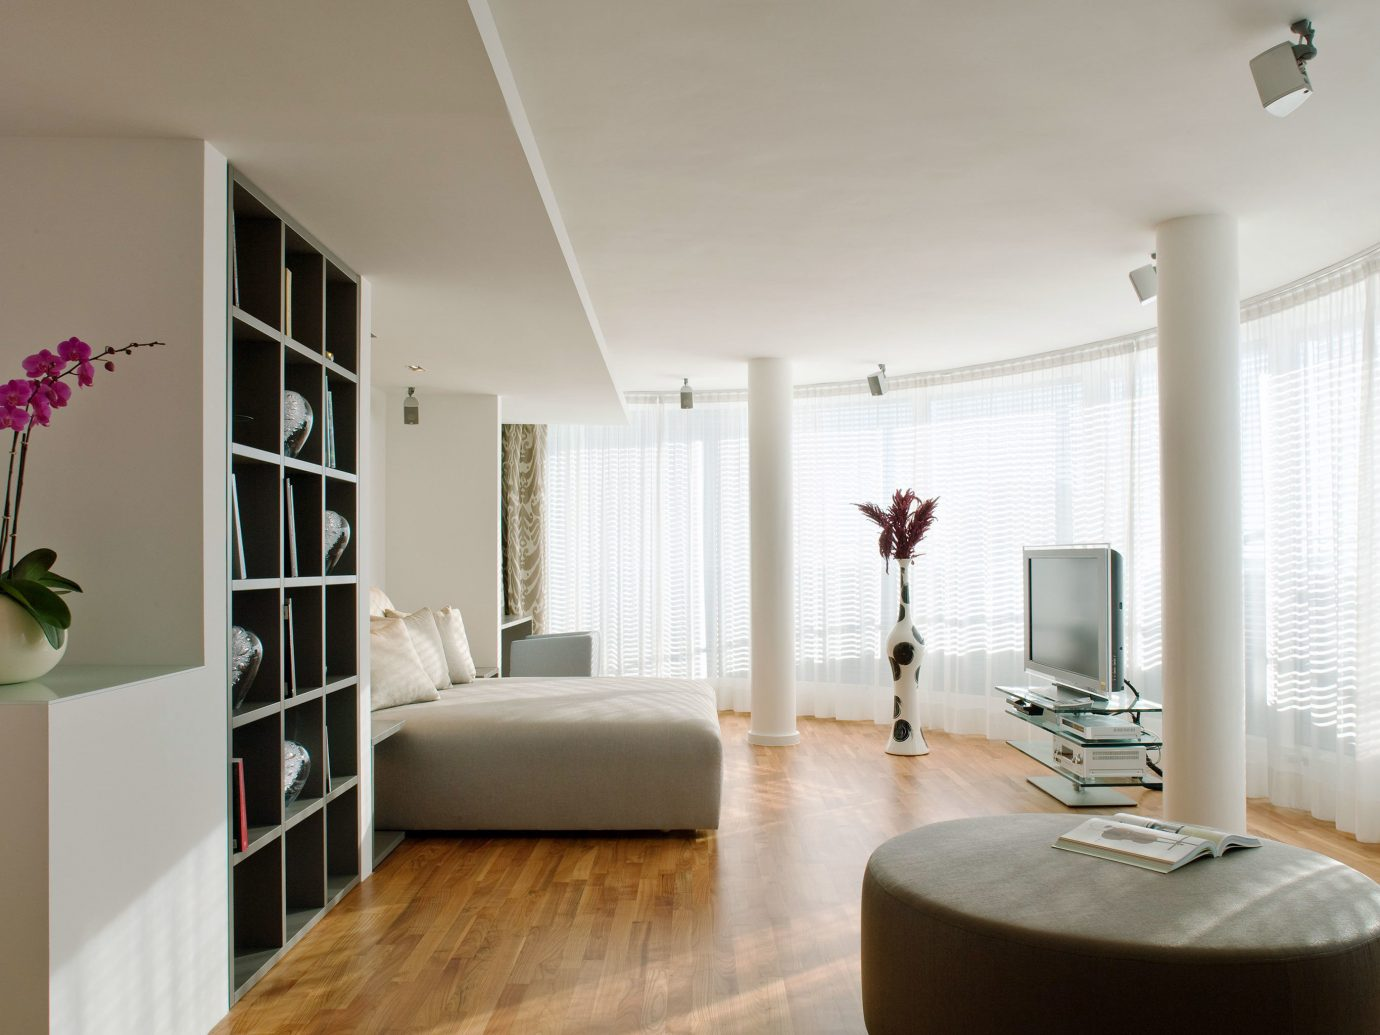 Bedroom Berlin Boutique Hotels City Germany Hotels Luxury Luxury Travel Modern indoor wall floor window room Living property living room home interior design ceiling real estate window covering Design dining room furniture estate apartment condominium decorated